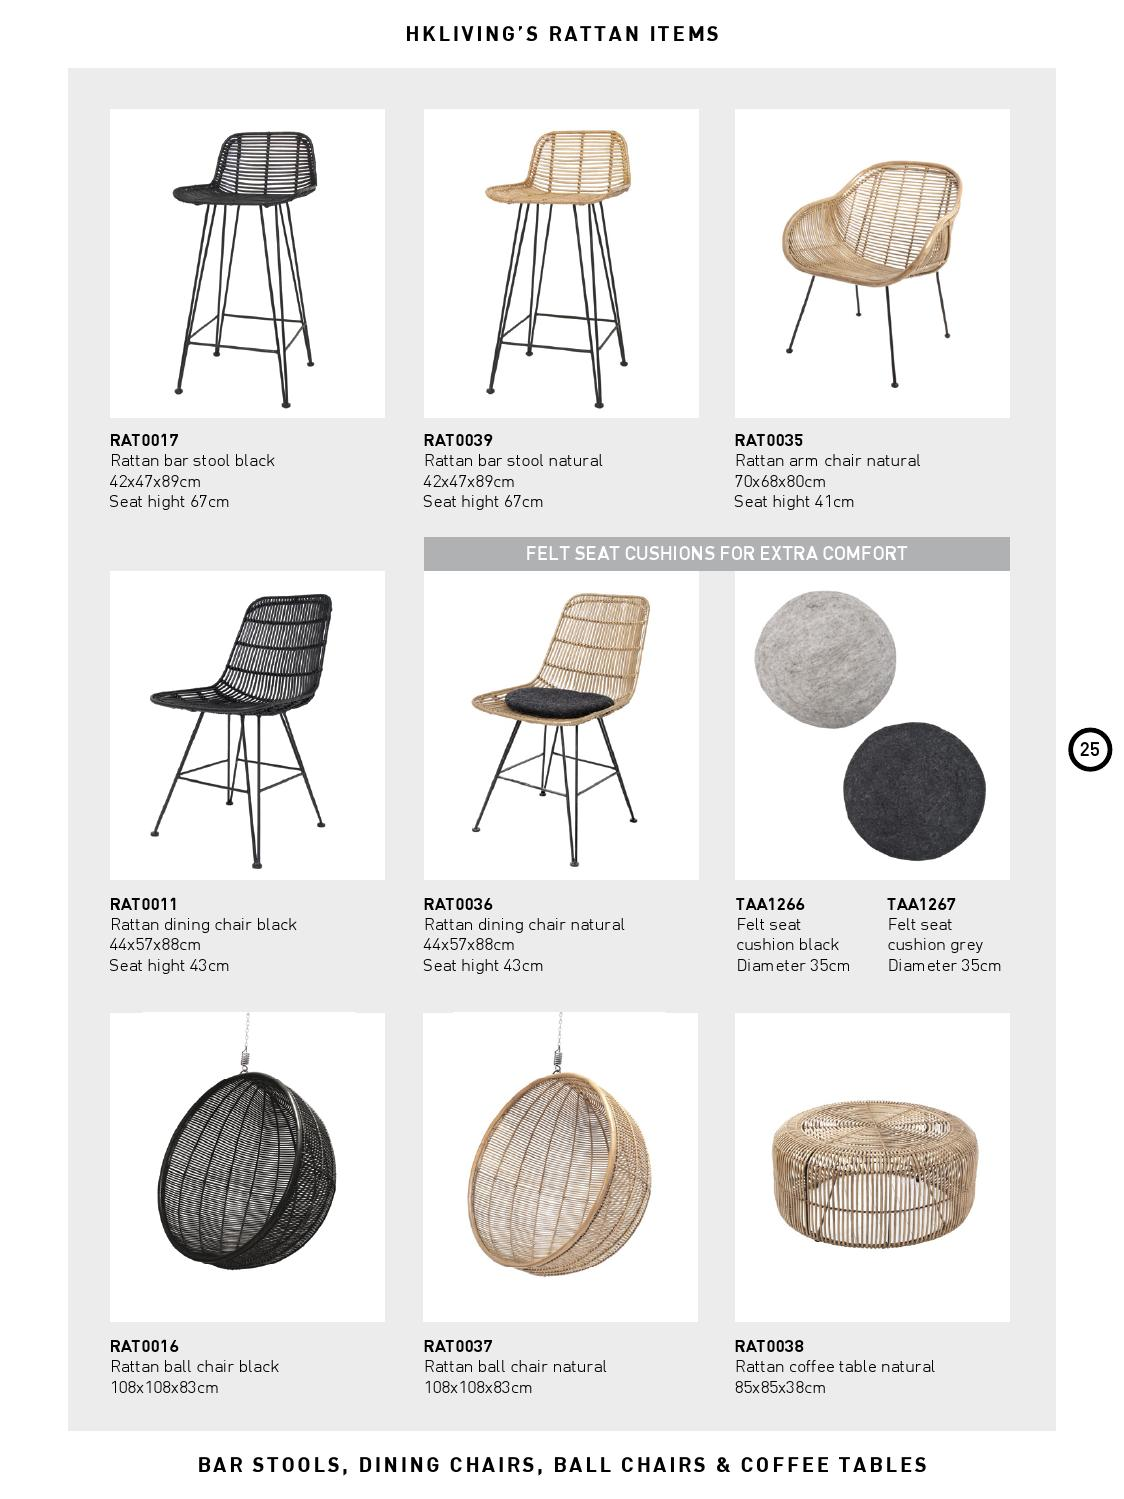 Astonishing Hkliving Catalogue 2016 By Hkliving Nederland Issuu Gmtry Best Dining Table And Chair Ideas Images Gmtryco